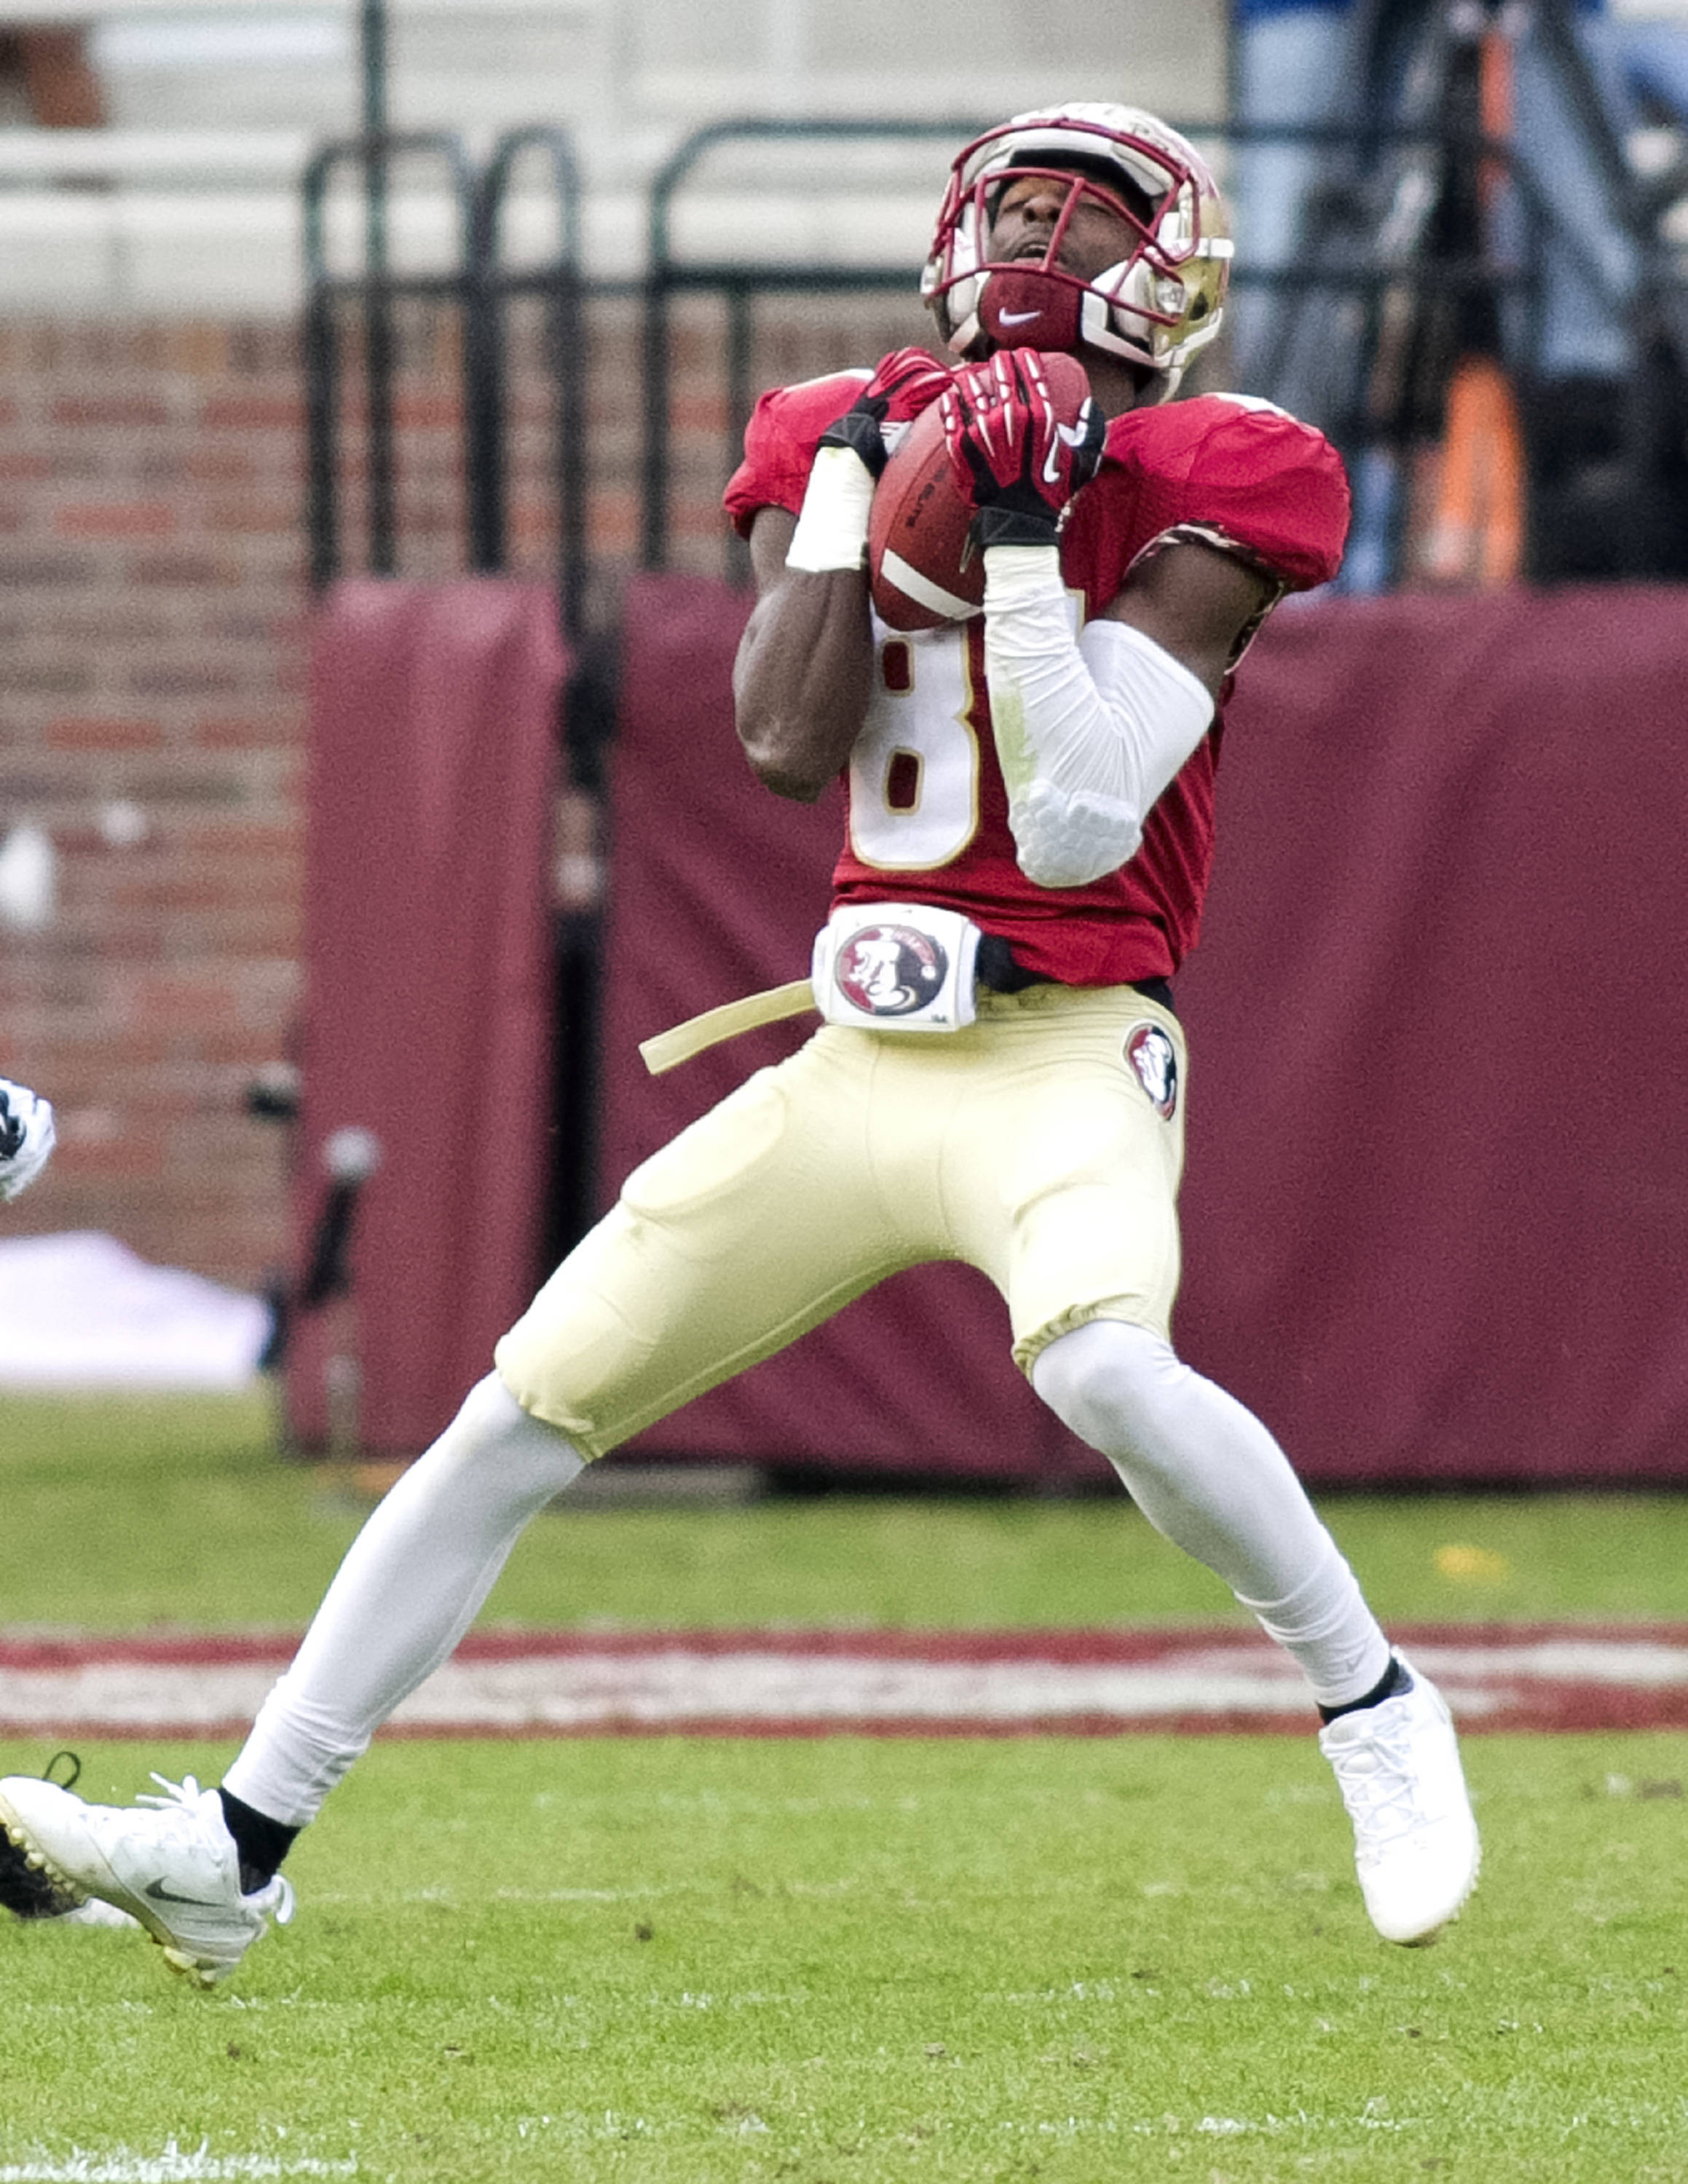 Kenny Shaw (81) with a fair catch on the punt, FSU vs Idaho, 11-23-13,  (Photo by Steve Musco)